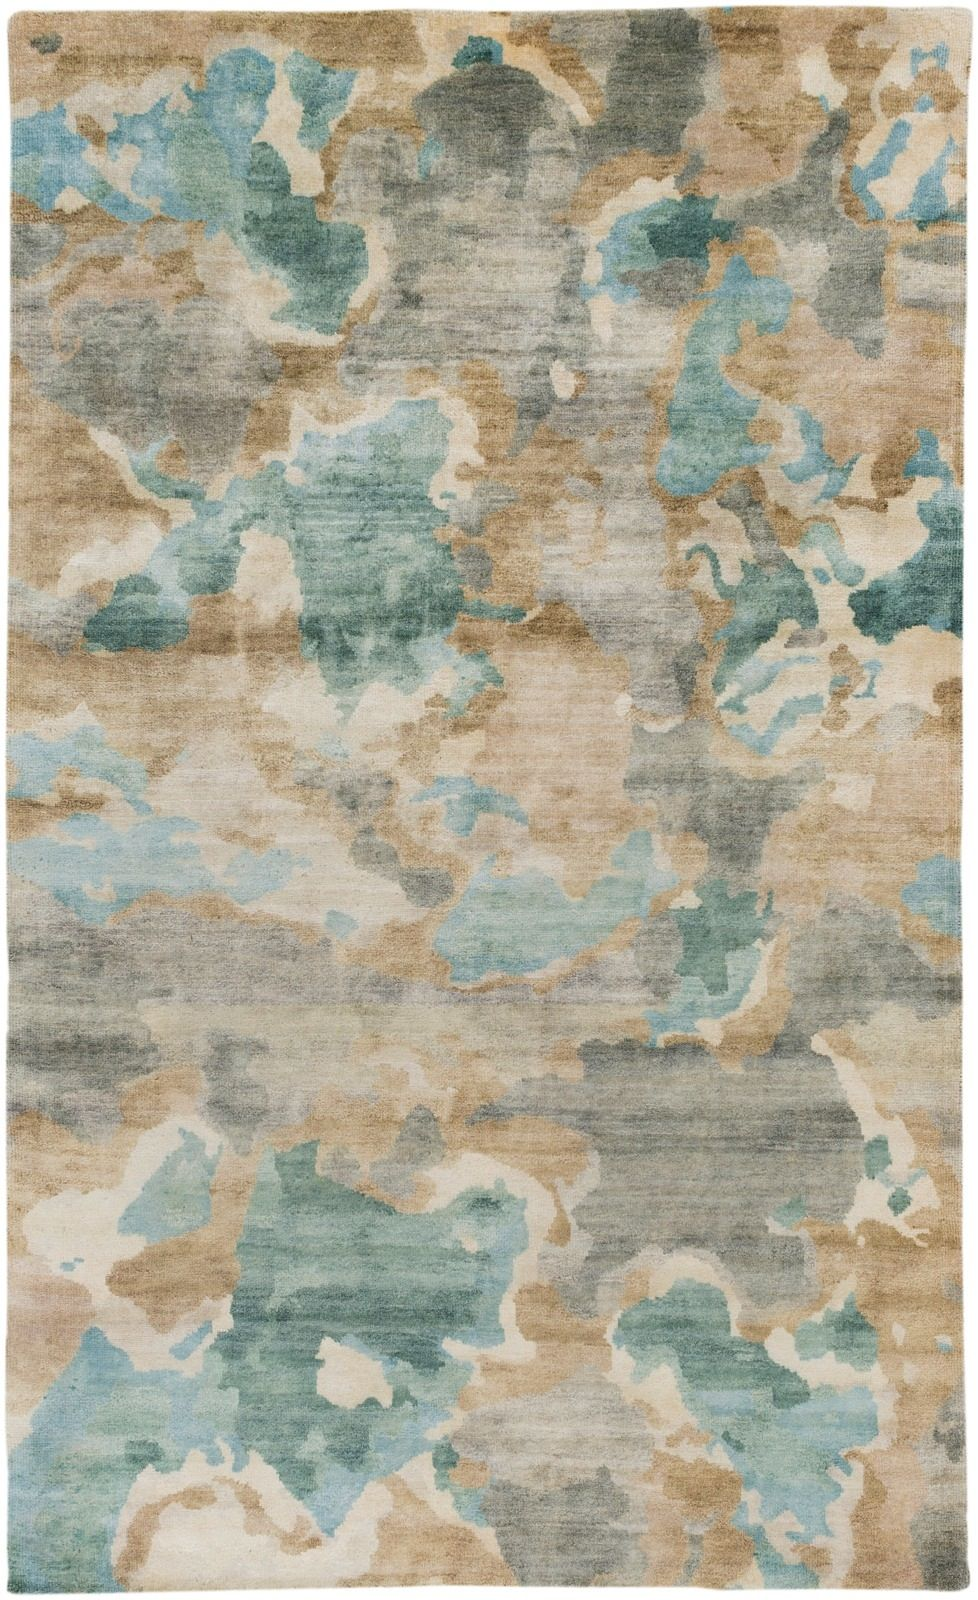 surya slice of nature contemporary area rug collection